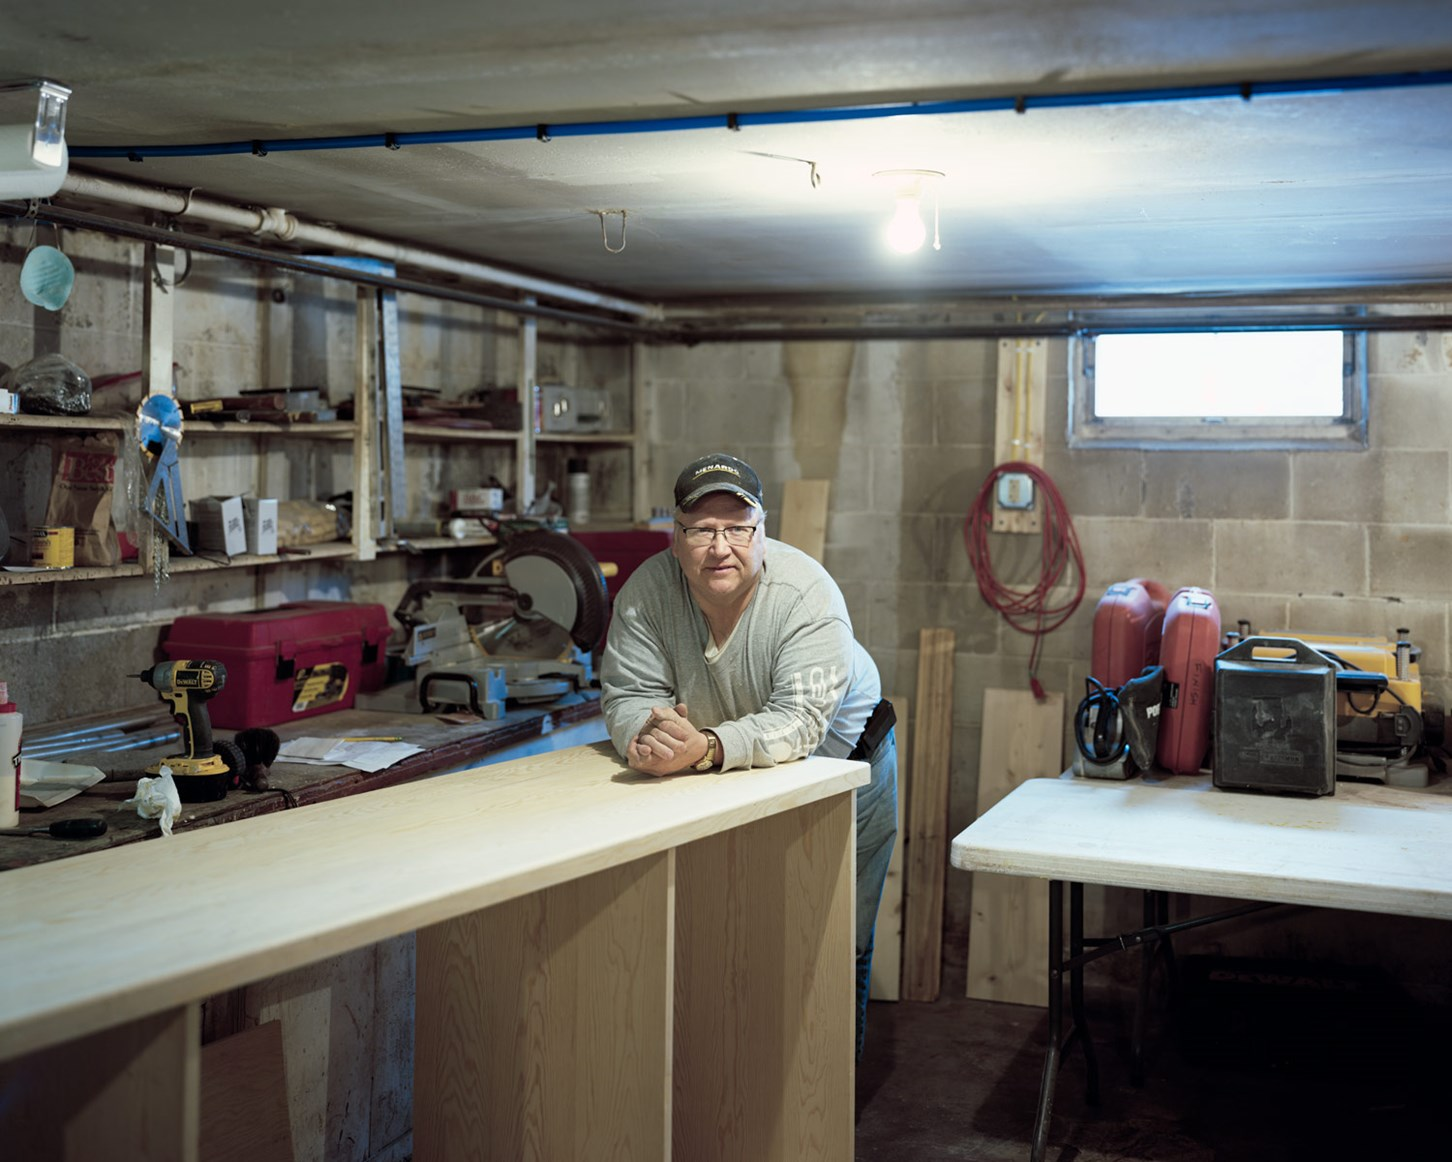 Basement Workshop, Ontonagon, Michigan, March 2015